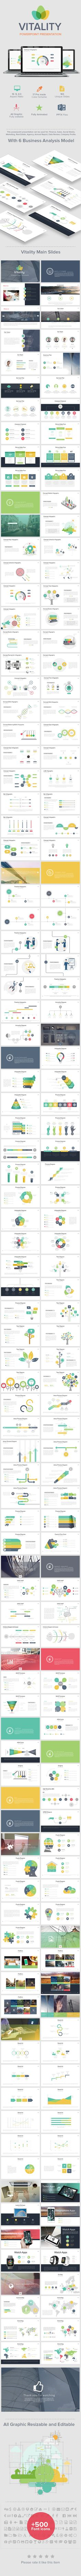 Vitality Powerpoint Presentation Template #slides #powerpoint Download: http://graphicriver.net/item/vitality-powerpoint-presentation-/11471385?ref=ksioks